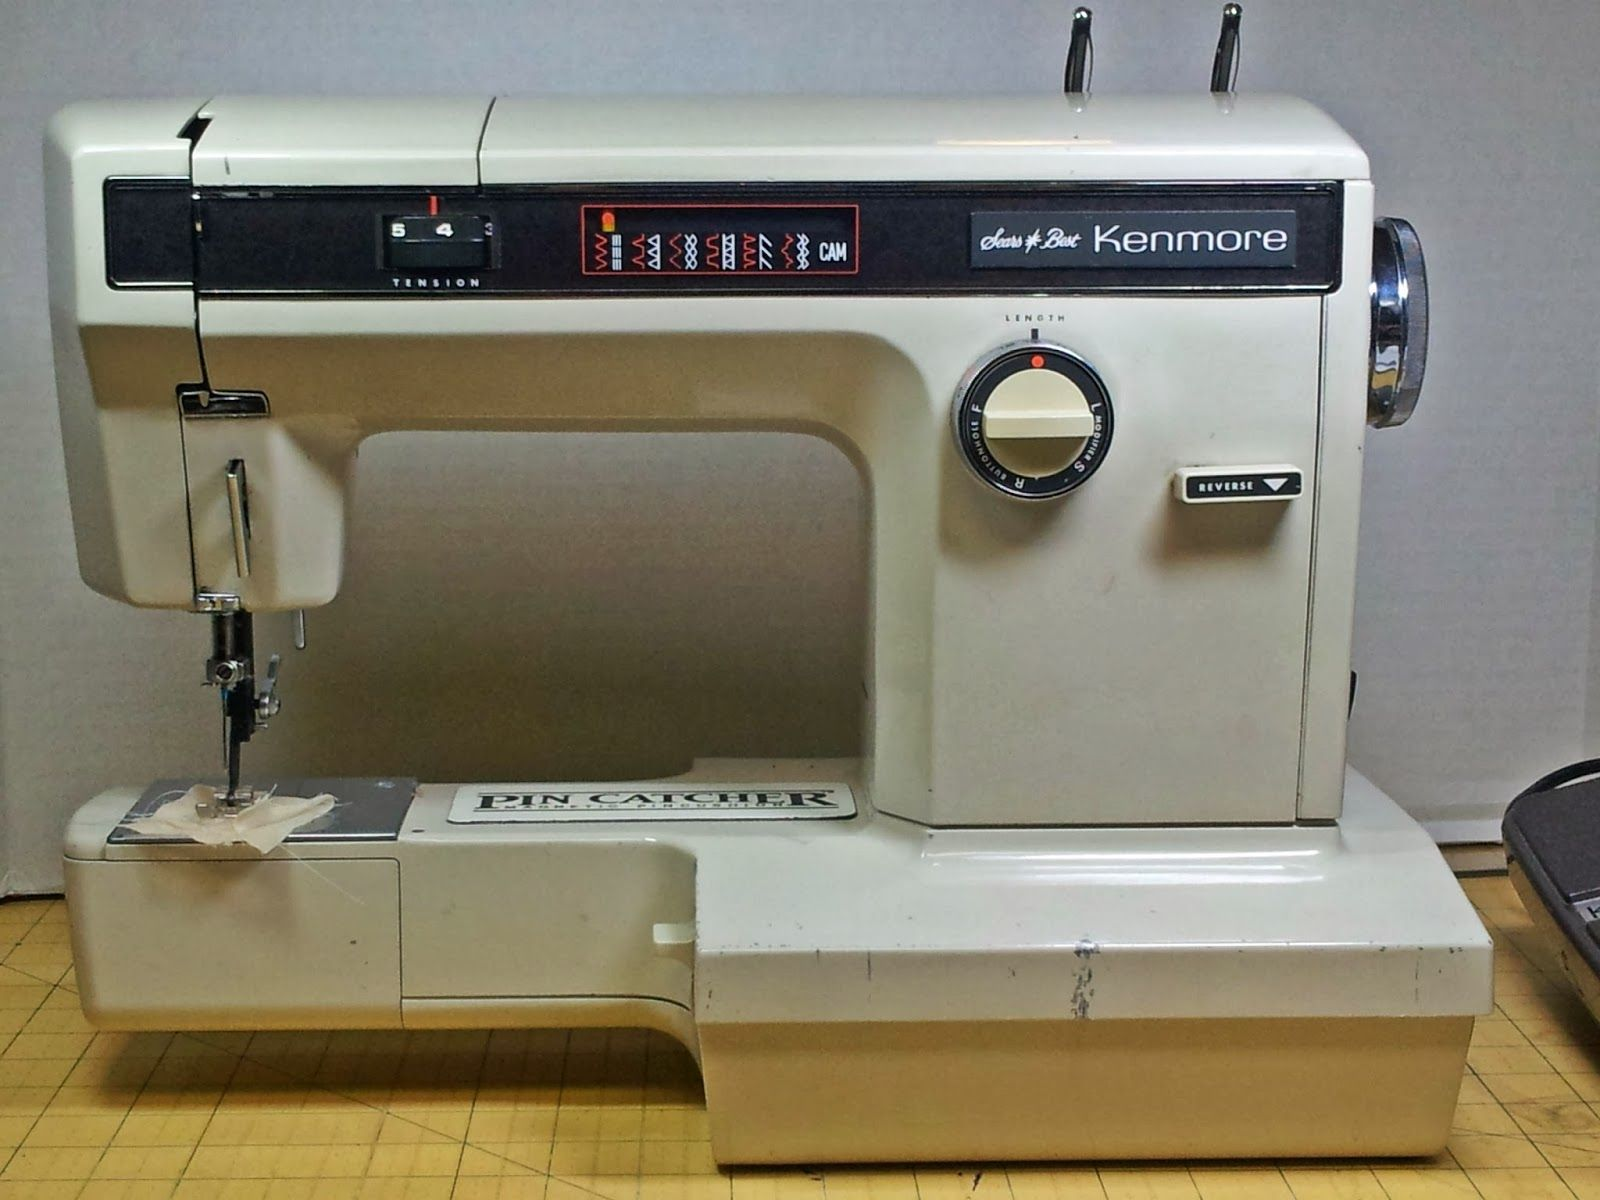 Christmas CraigsList: Ho Ho Sew (With images) | Sewing ...